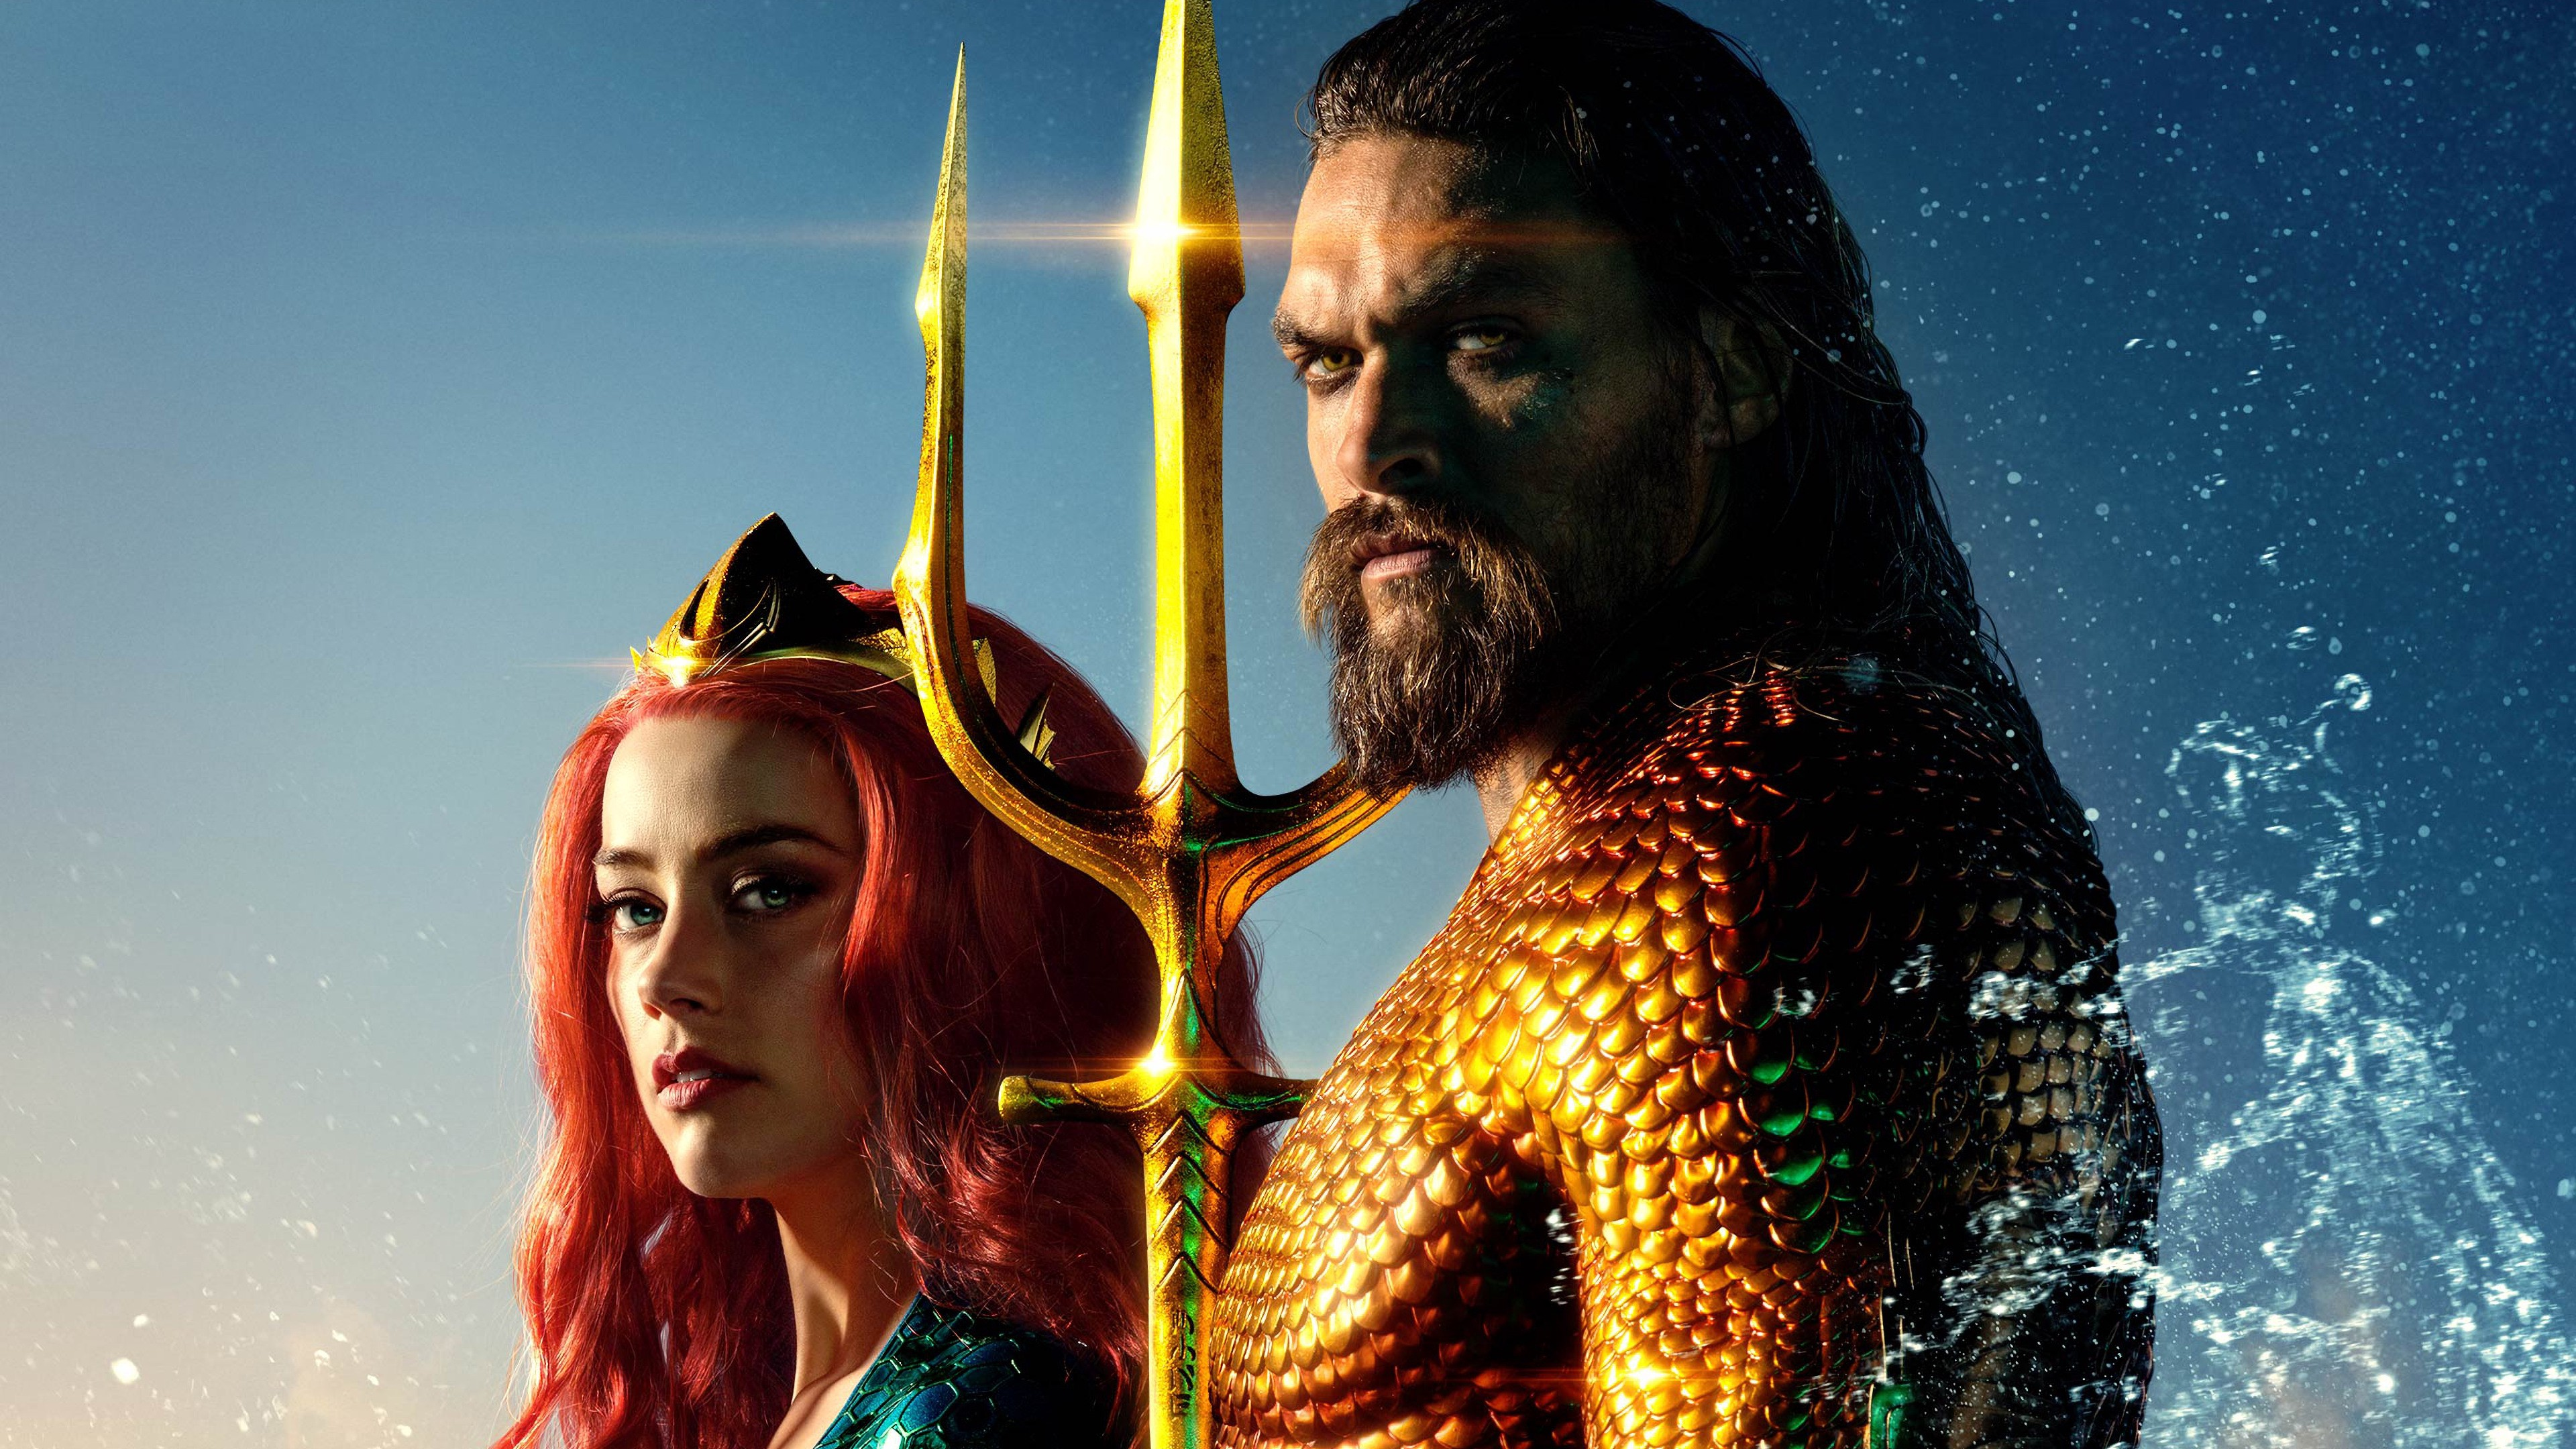 Aquaman 2 Cast, Release Date, Story, News, and More Details | Den of Geek